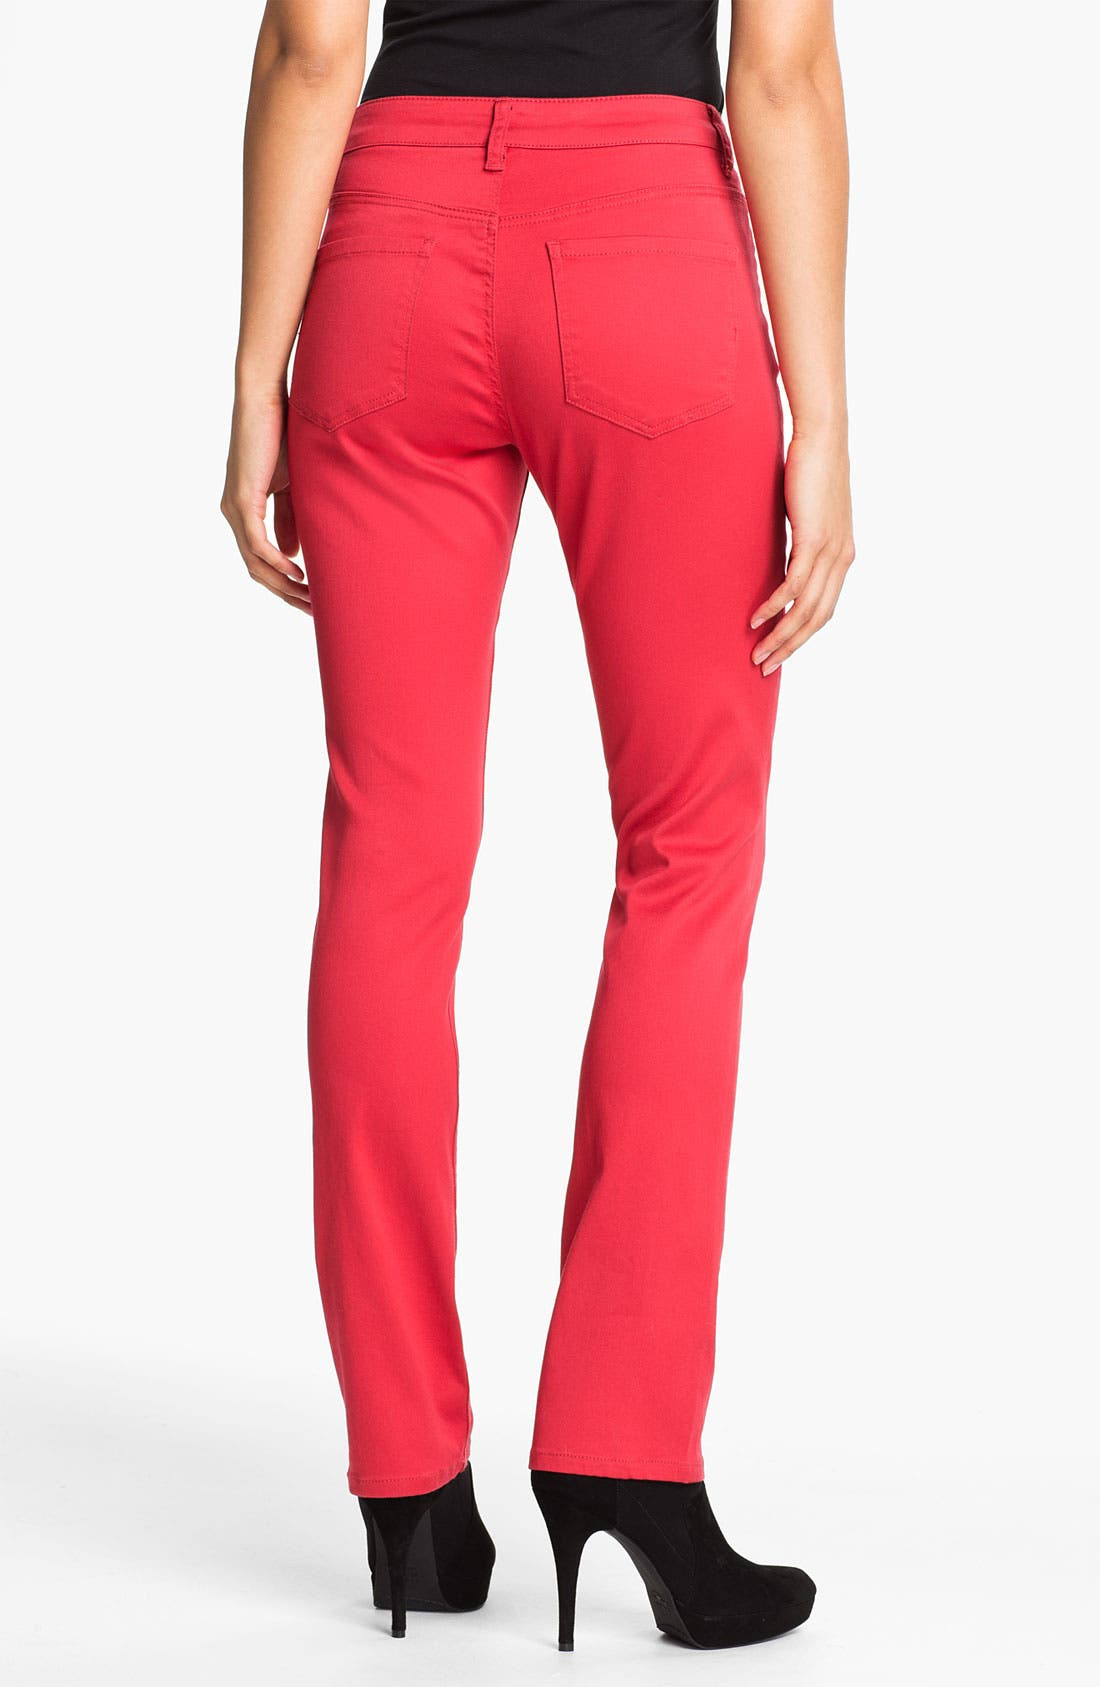 Alternate Image 2  - Liverpool Jeans Company 'Sadie' Colored Straight Leg Stretch Jeans